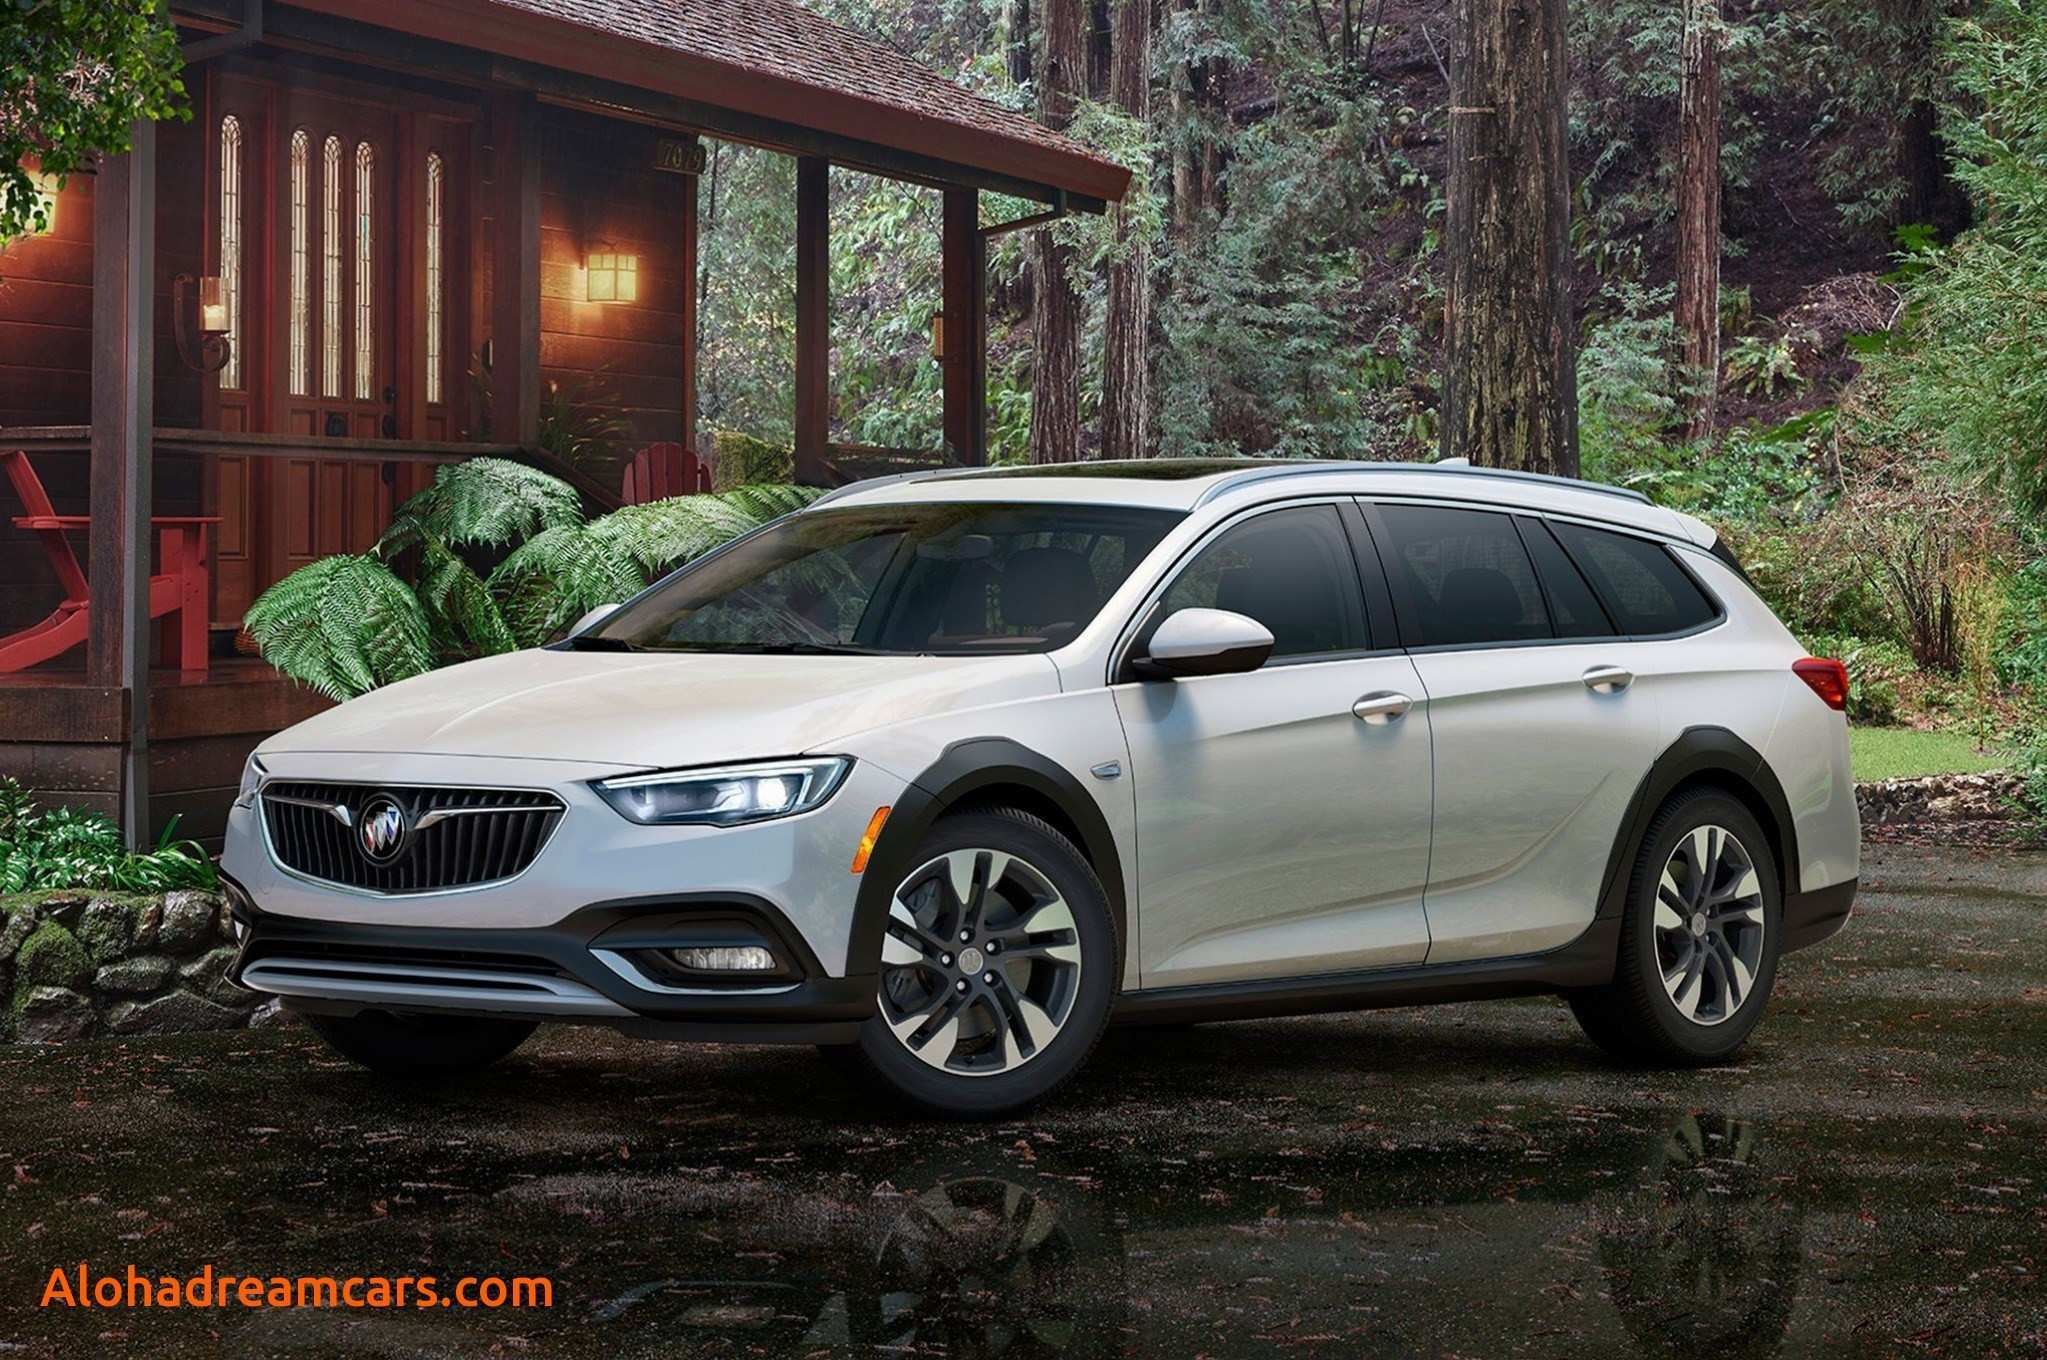 51 All New 2020 Buick Anthem Research New